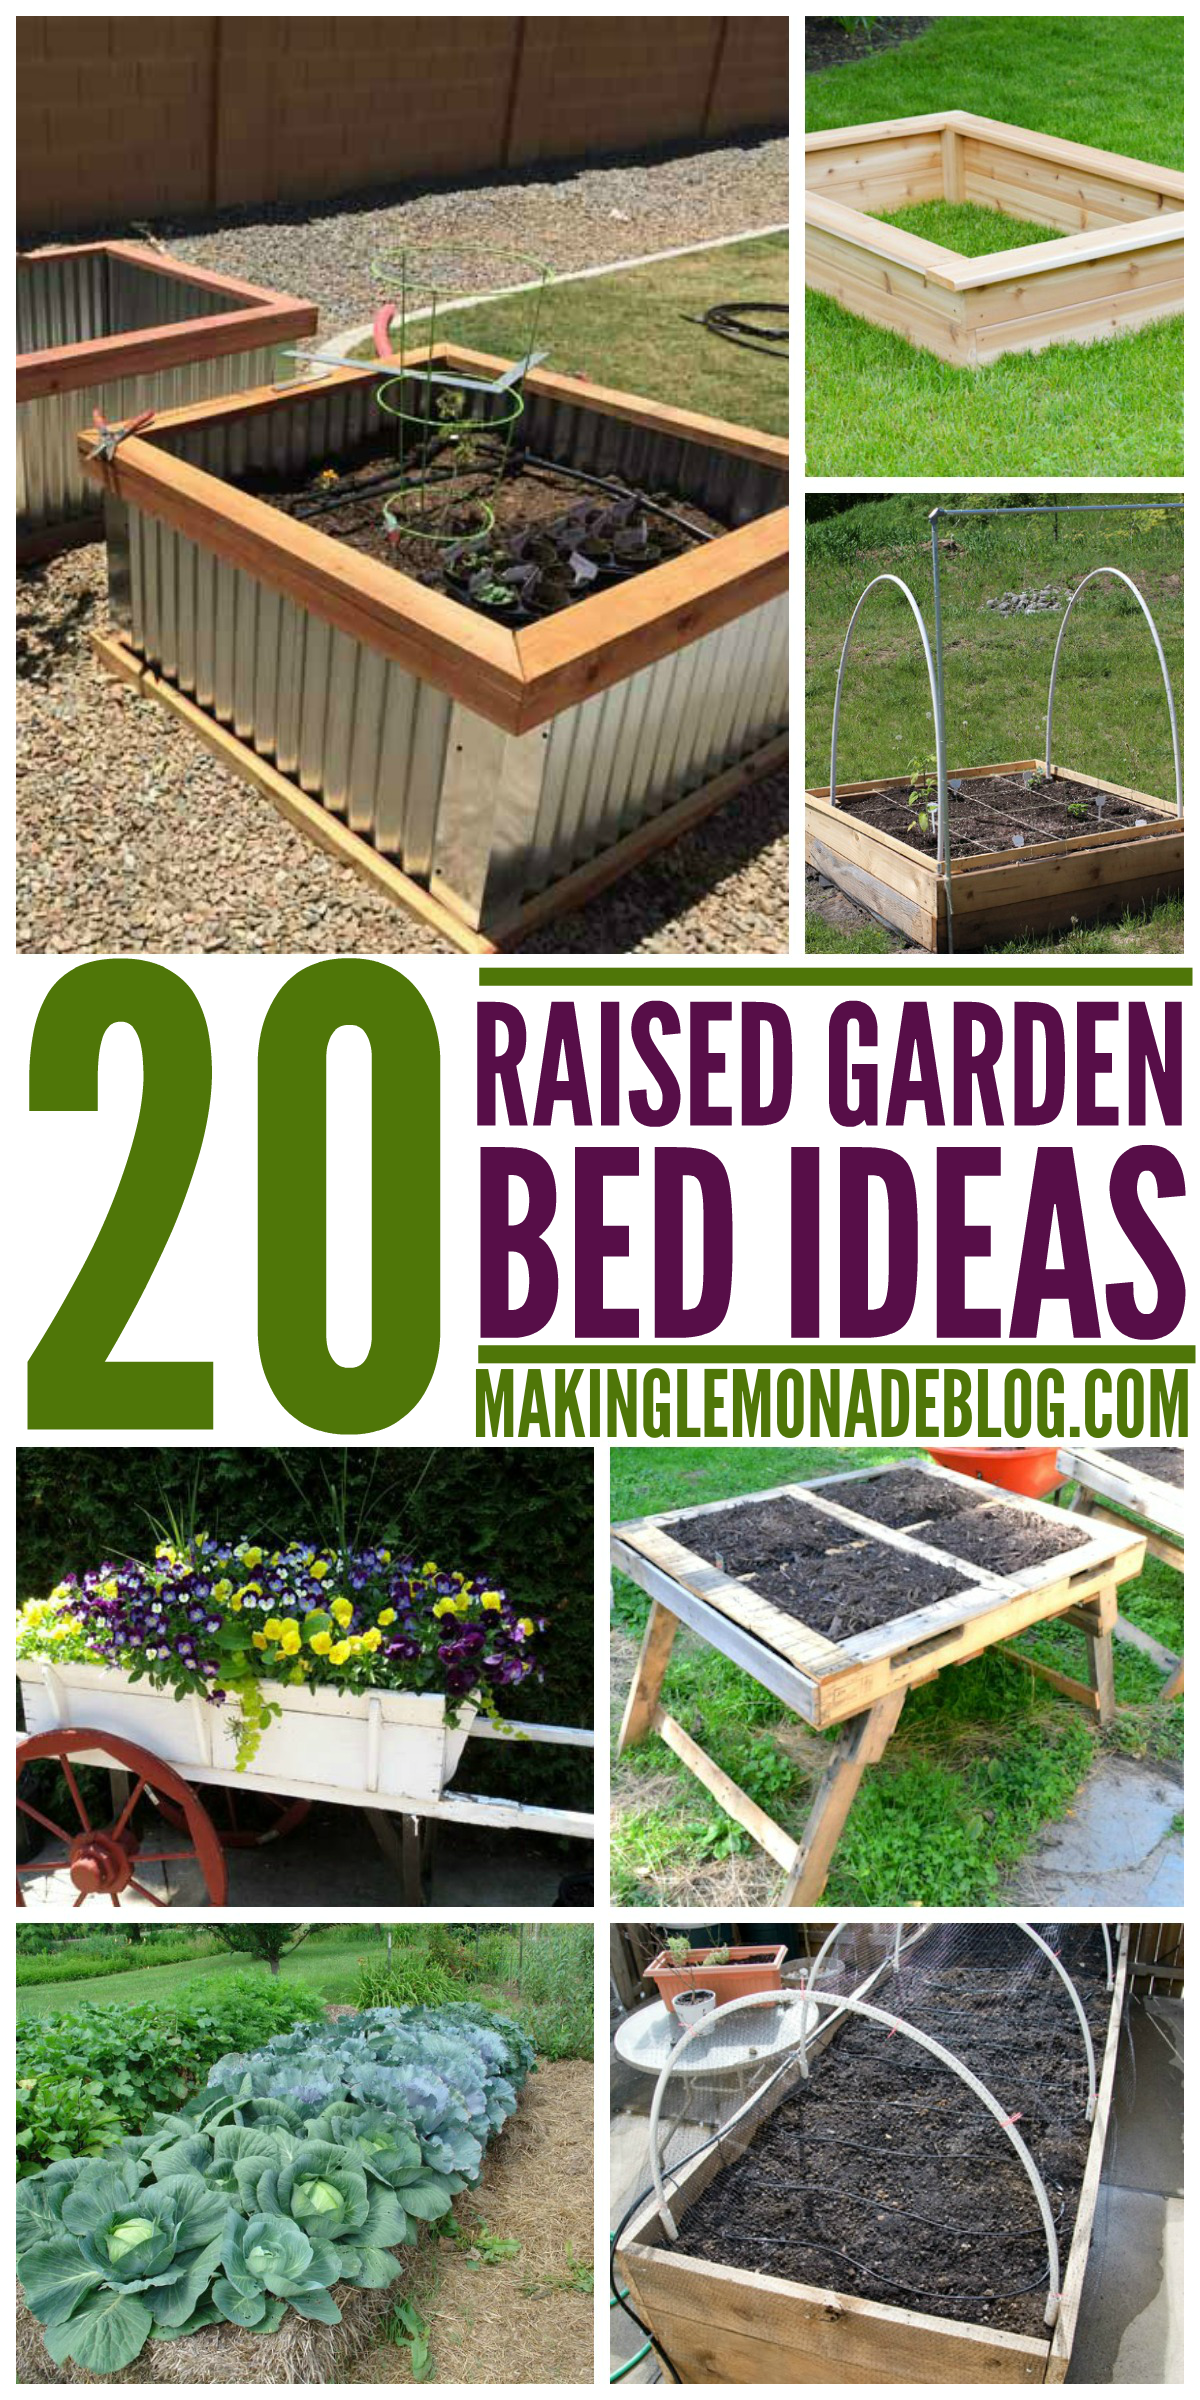 These Raised Garden Bed Ideas Are So Easy And Clever I 400 x 300